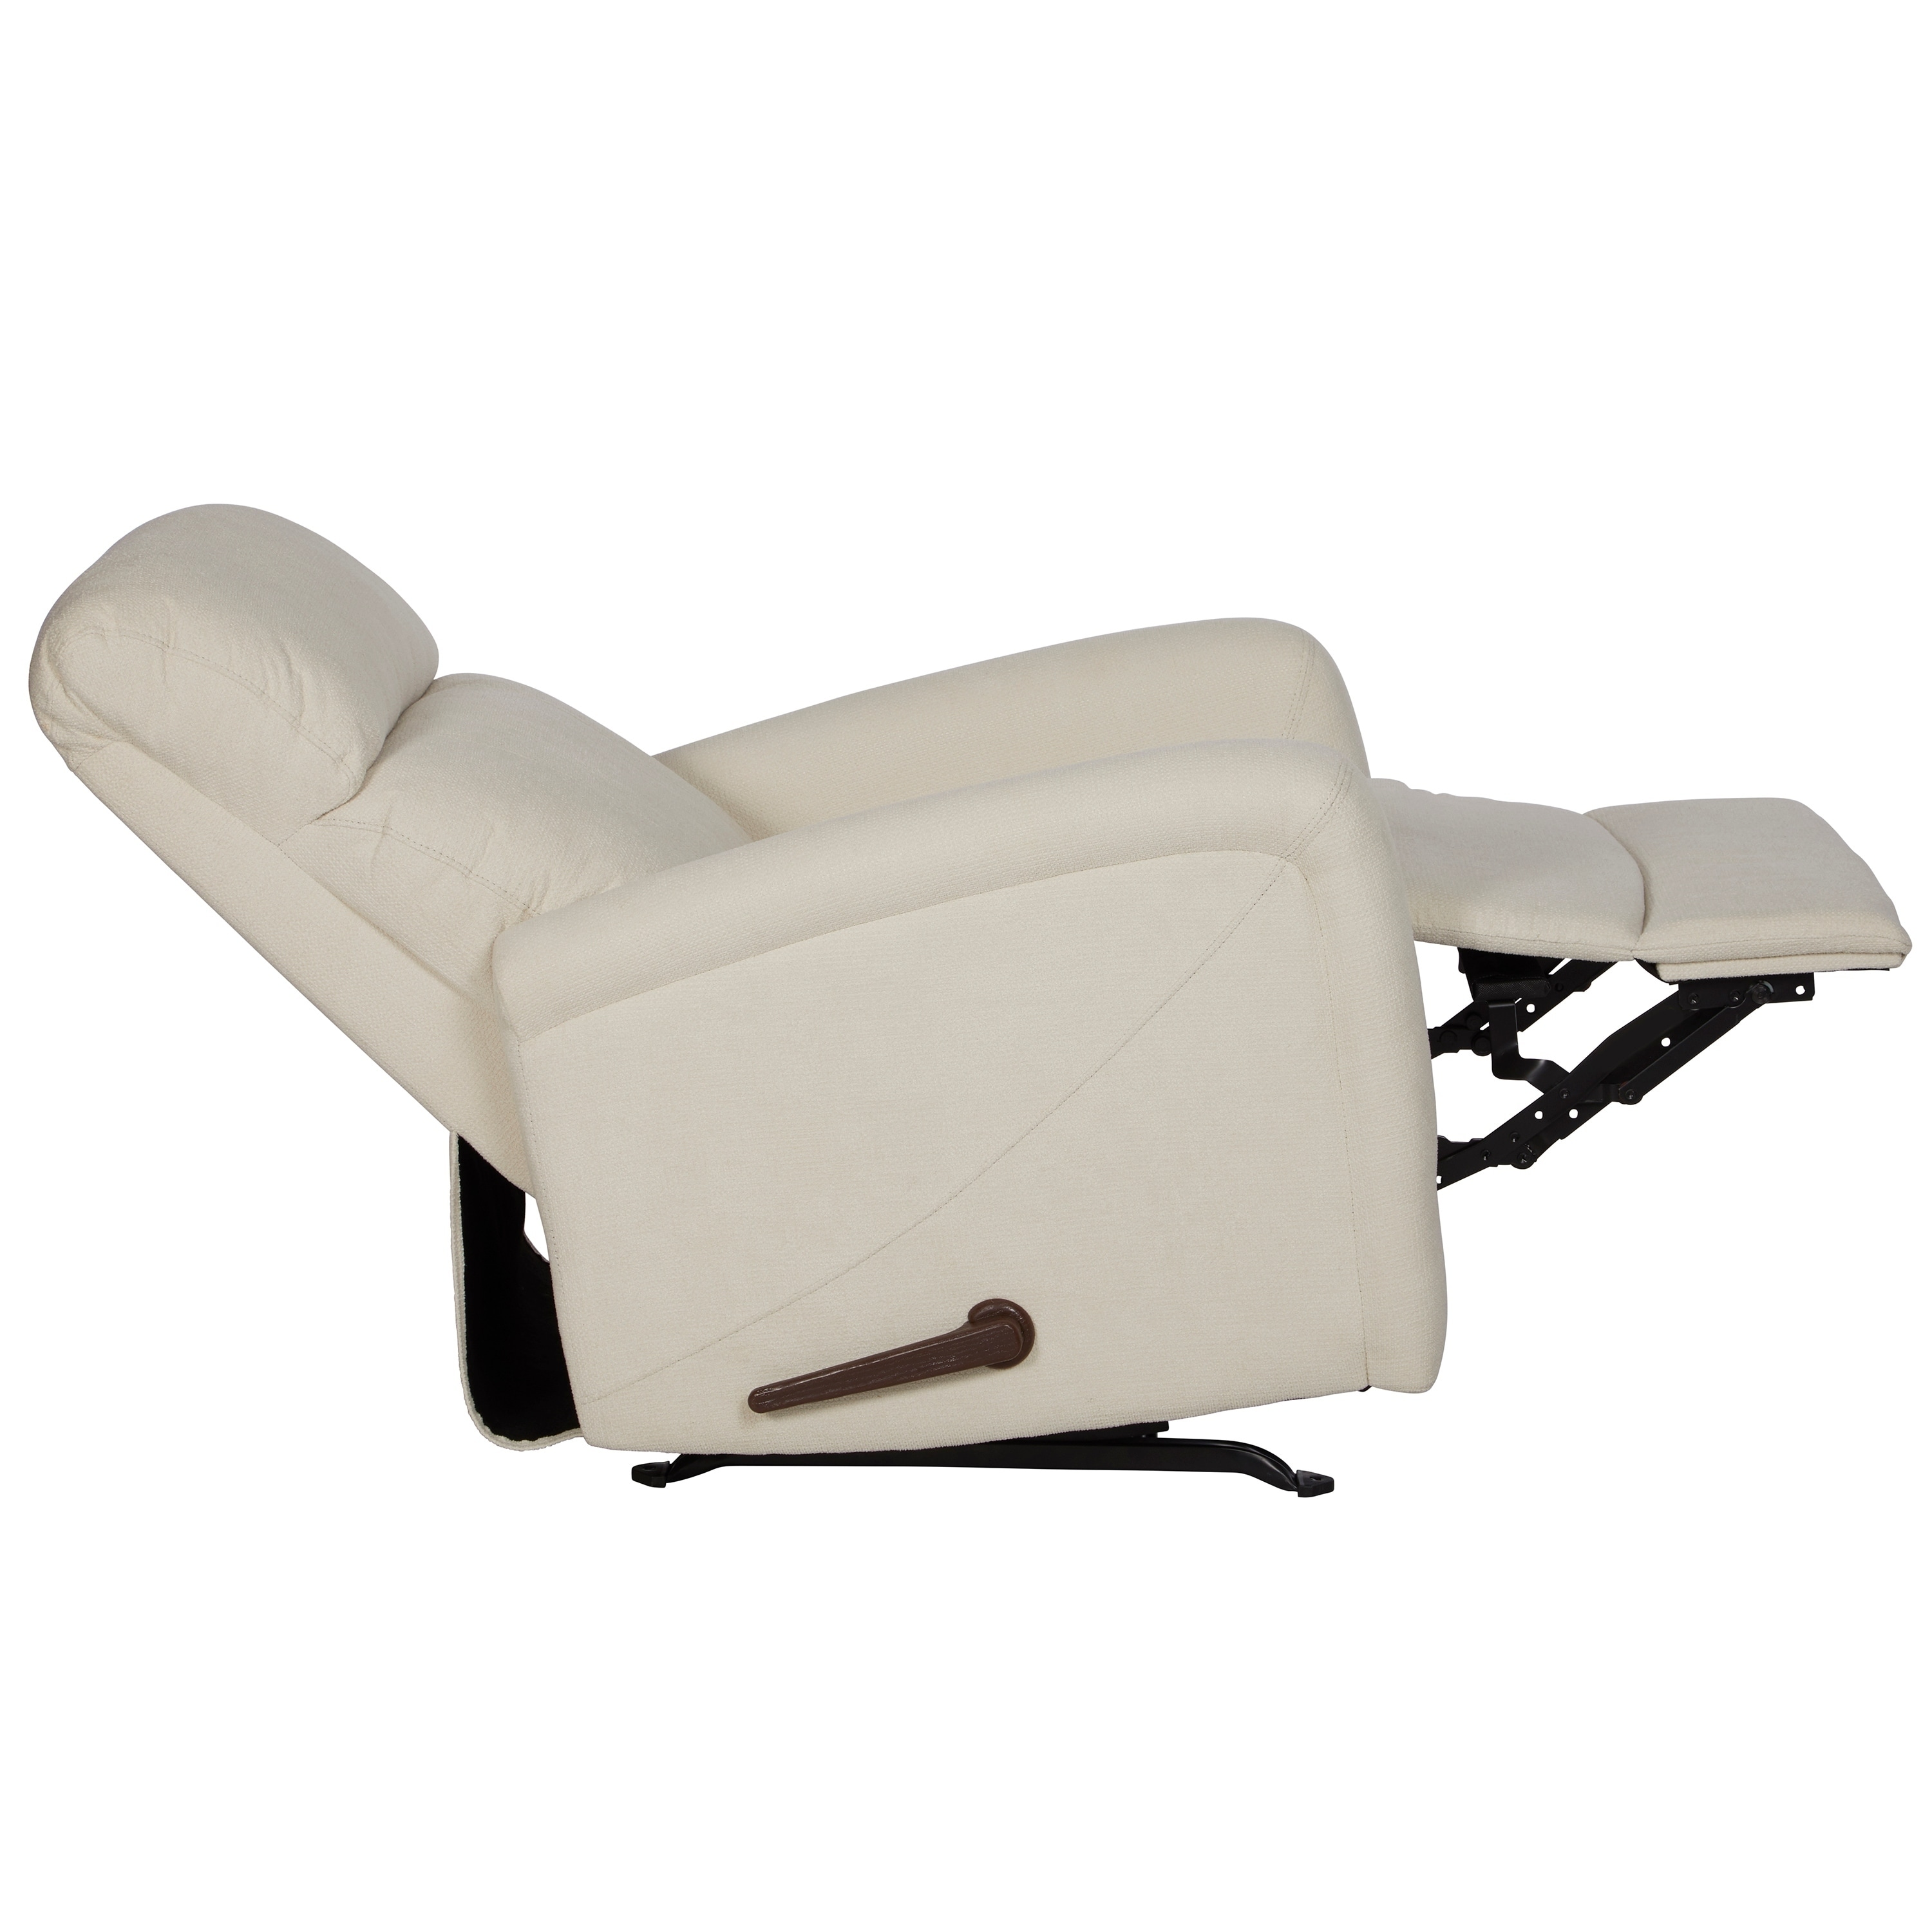 ProLounger Cream Chenille Rocker Recliner Chair   Free Shipping Today    Overstock   26538936